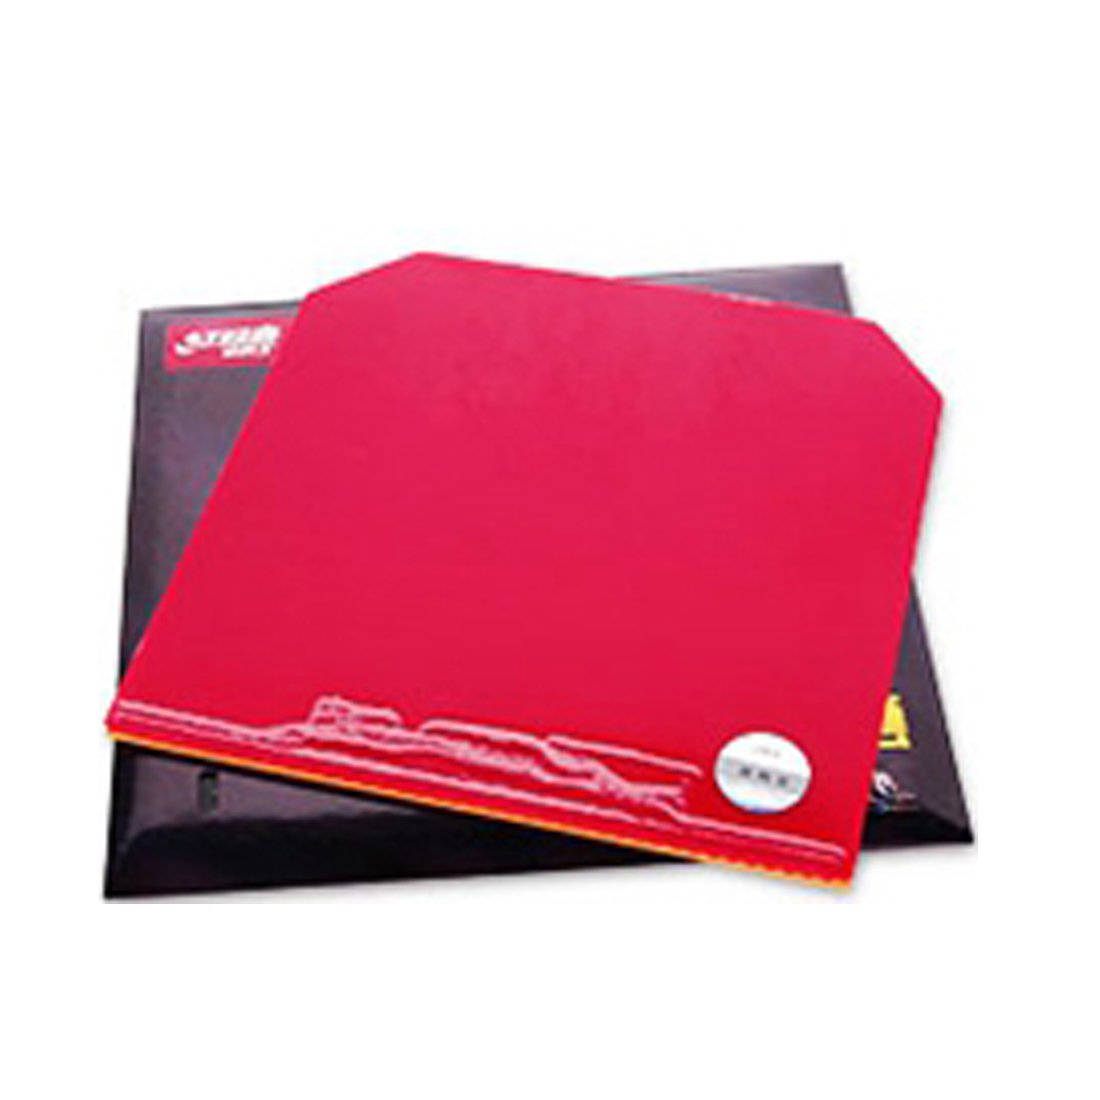 Beijing space table tennis DHS red shuangxi new province crazy 3 3 table tennis rubber cover glue new package of soaring 3